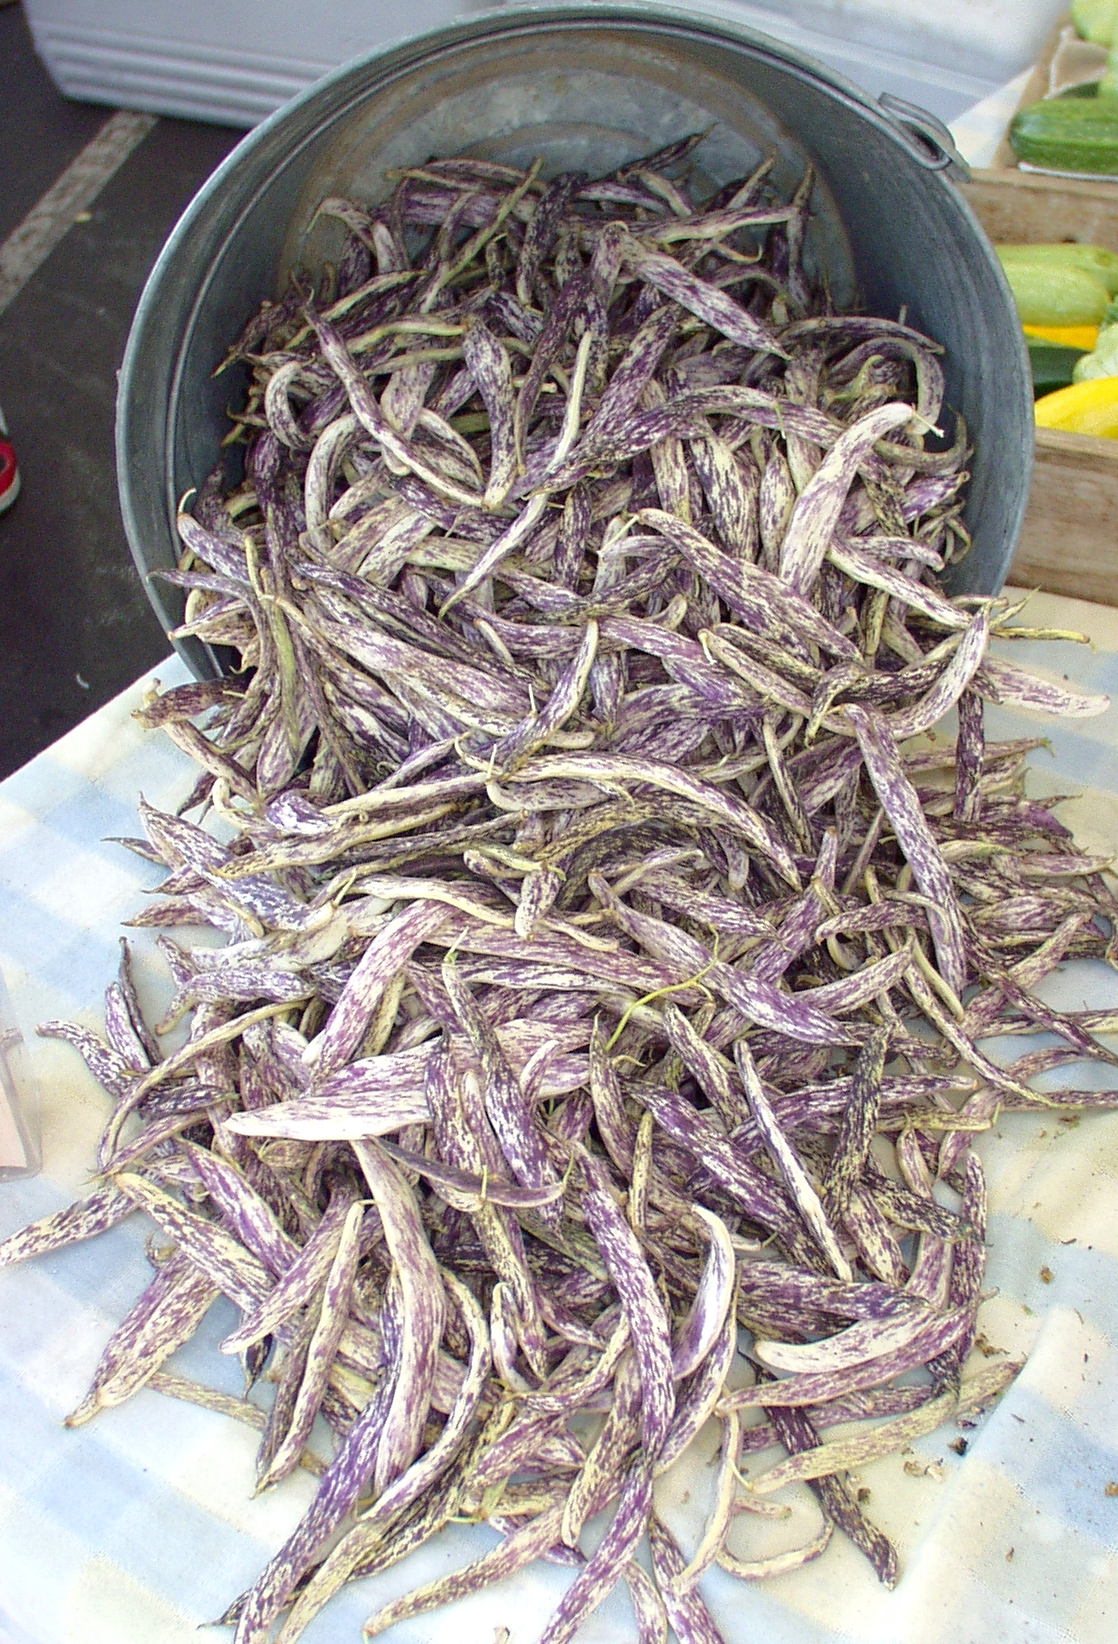 Dragon Tongue beans from Growing Things. Photo copyright 2009 by Zachary D. Lyons.